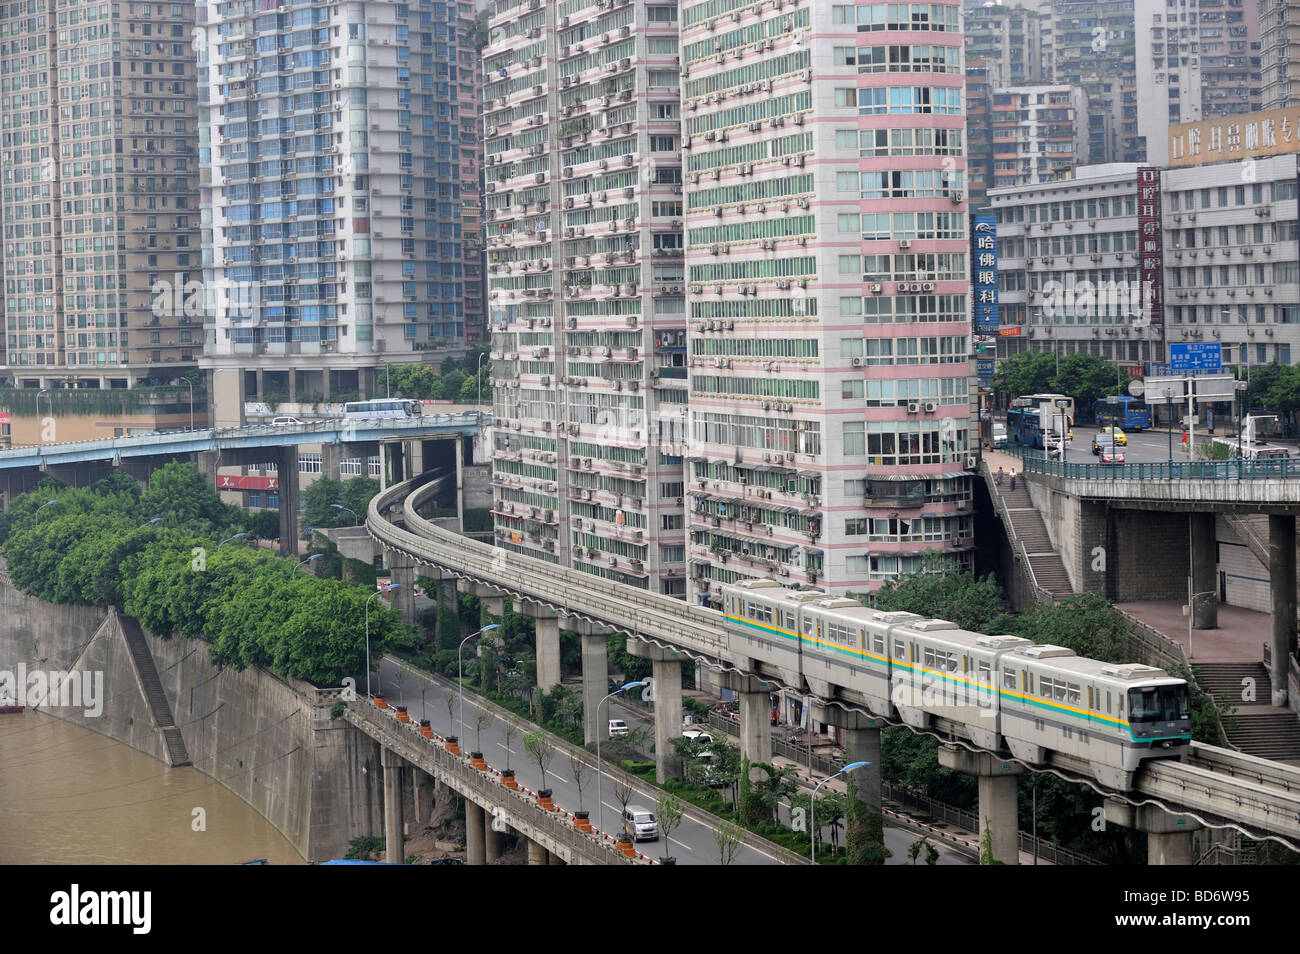 Chongqing metro train across high density apartments. 02-Aug-2009 - Stock Image